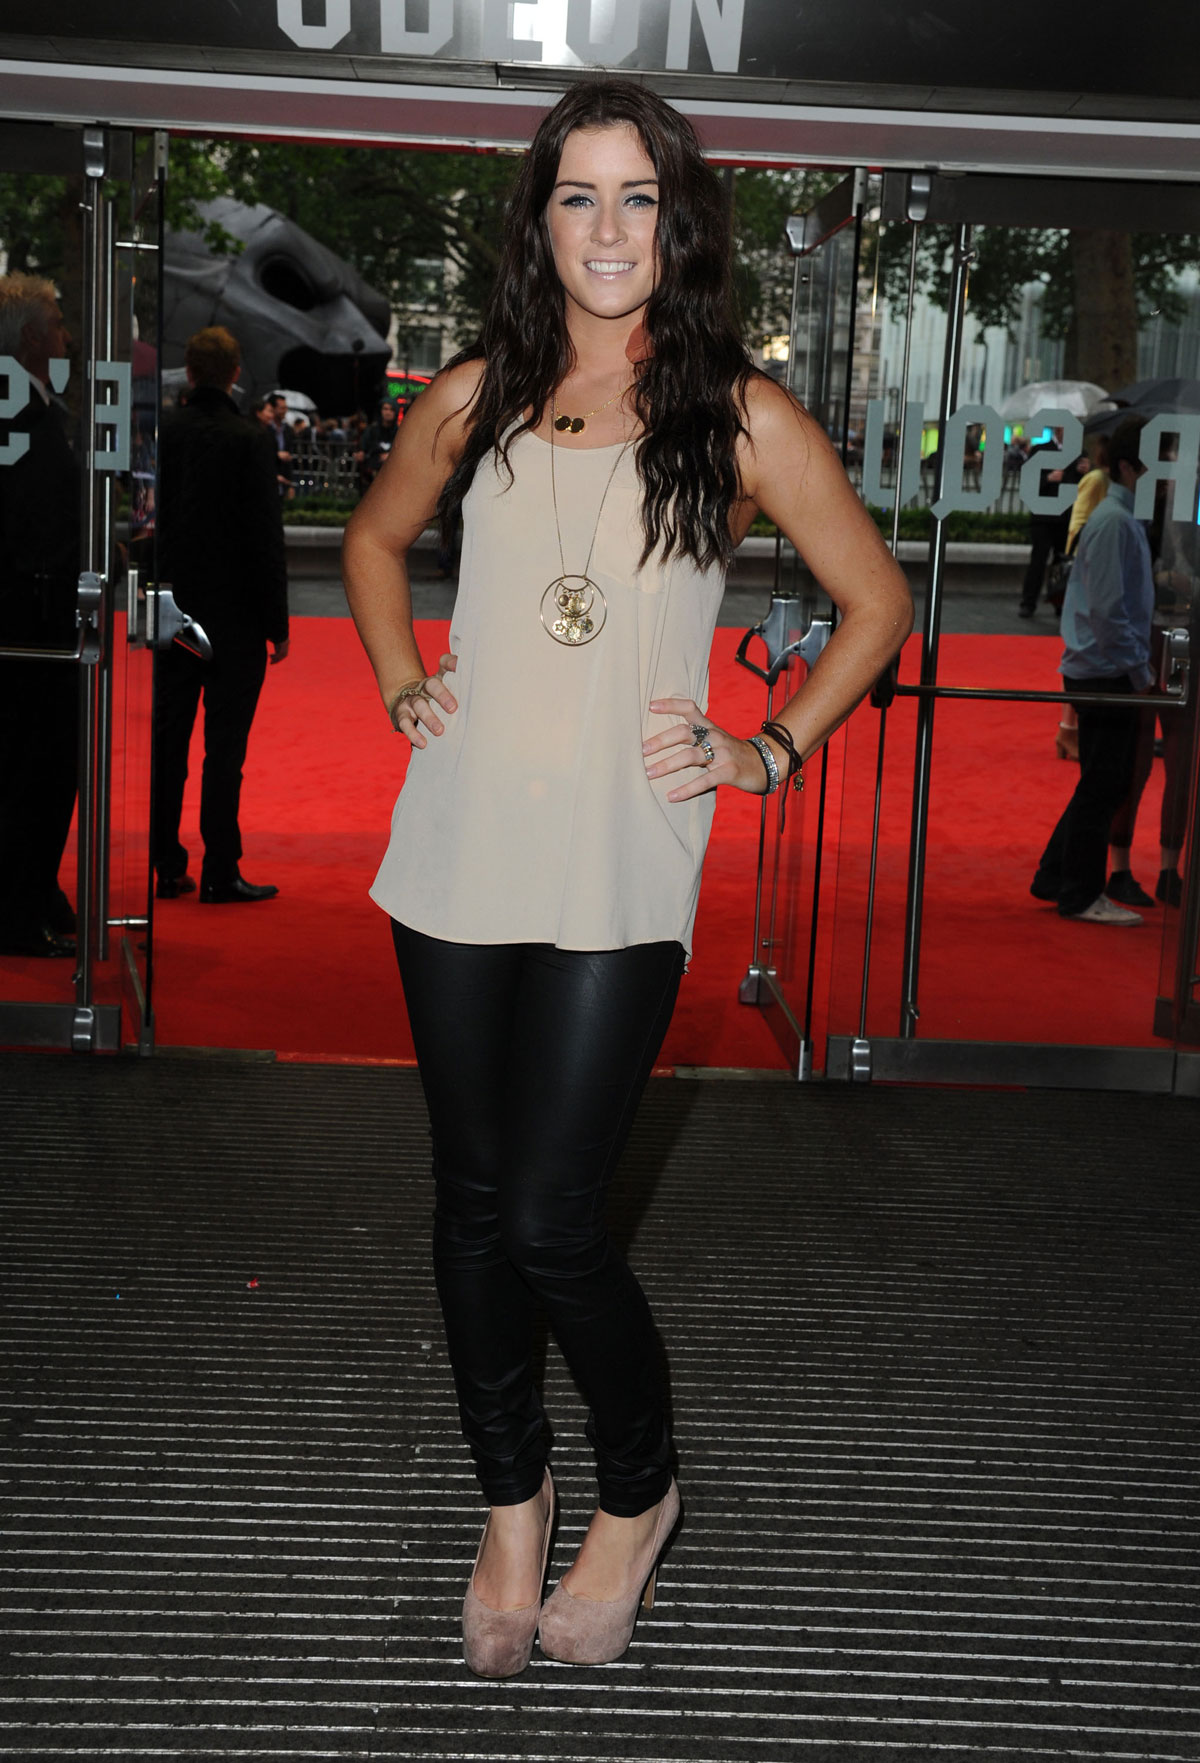 lucie jones at the dark knight rises premiere in london